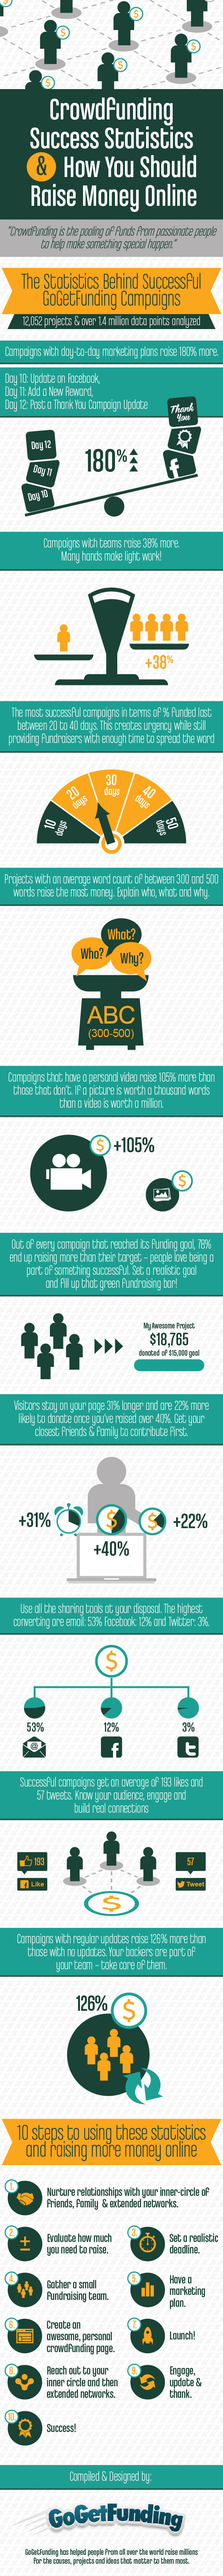 Crowdfunding Success Statistics